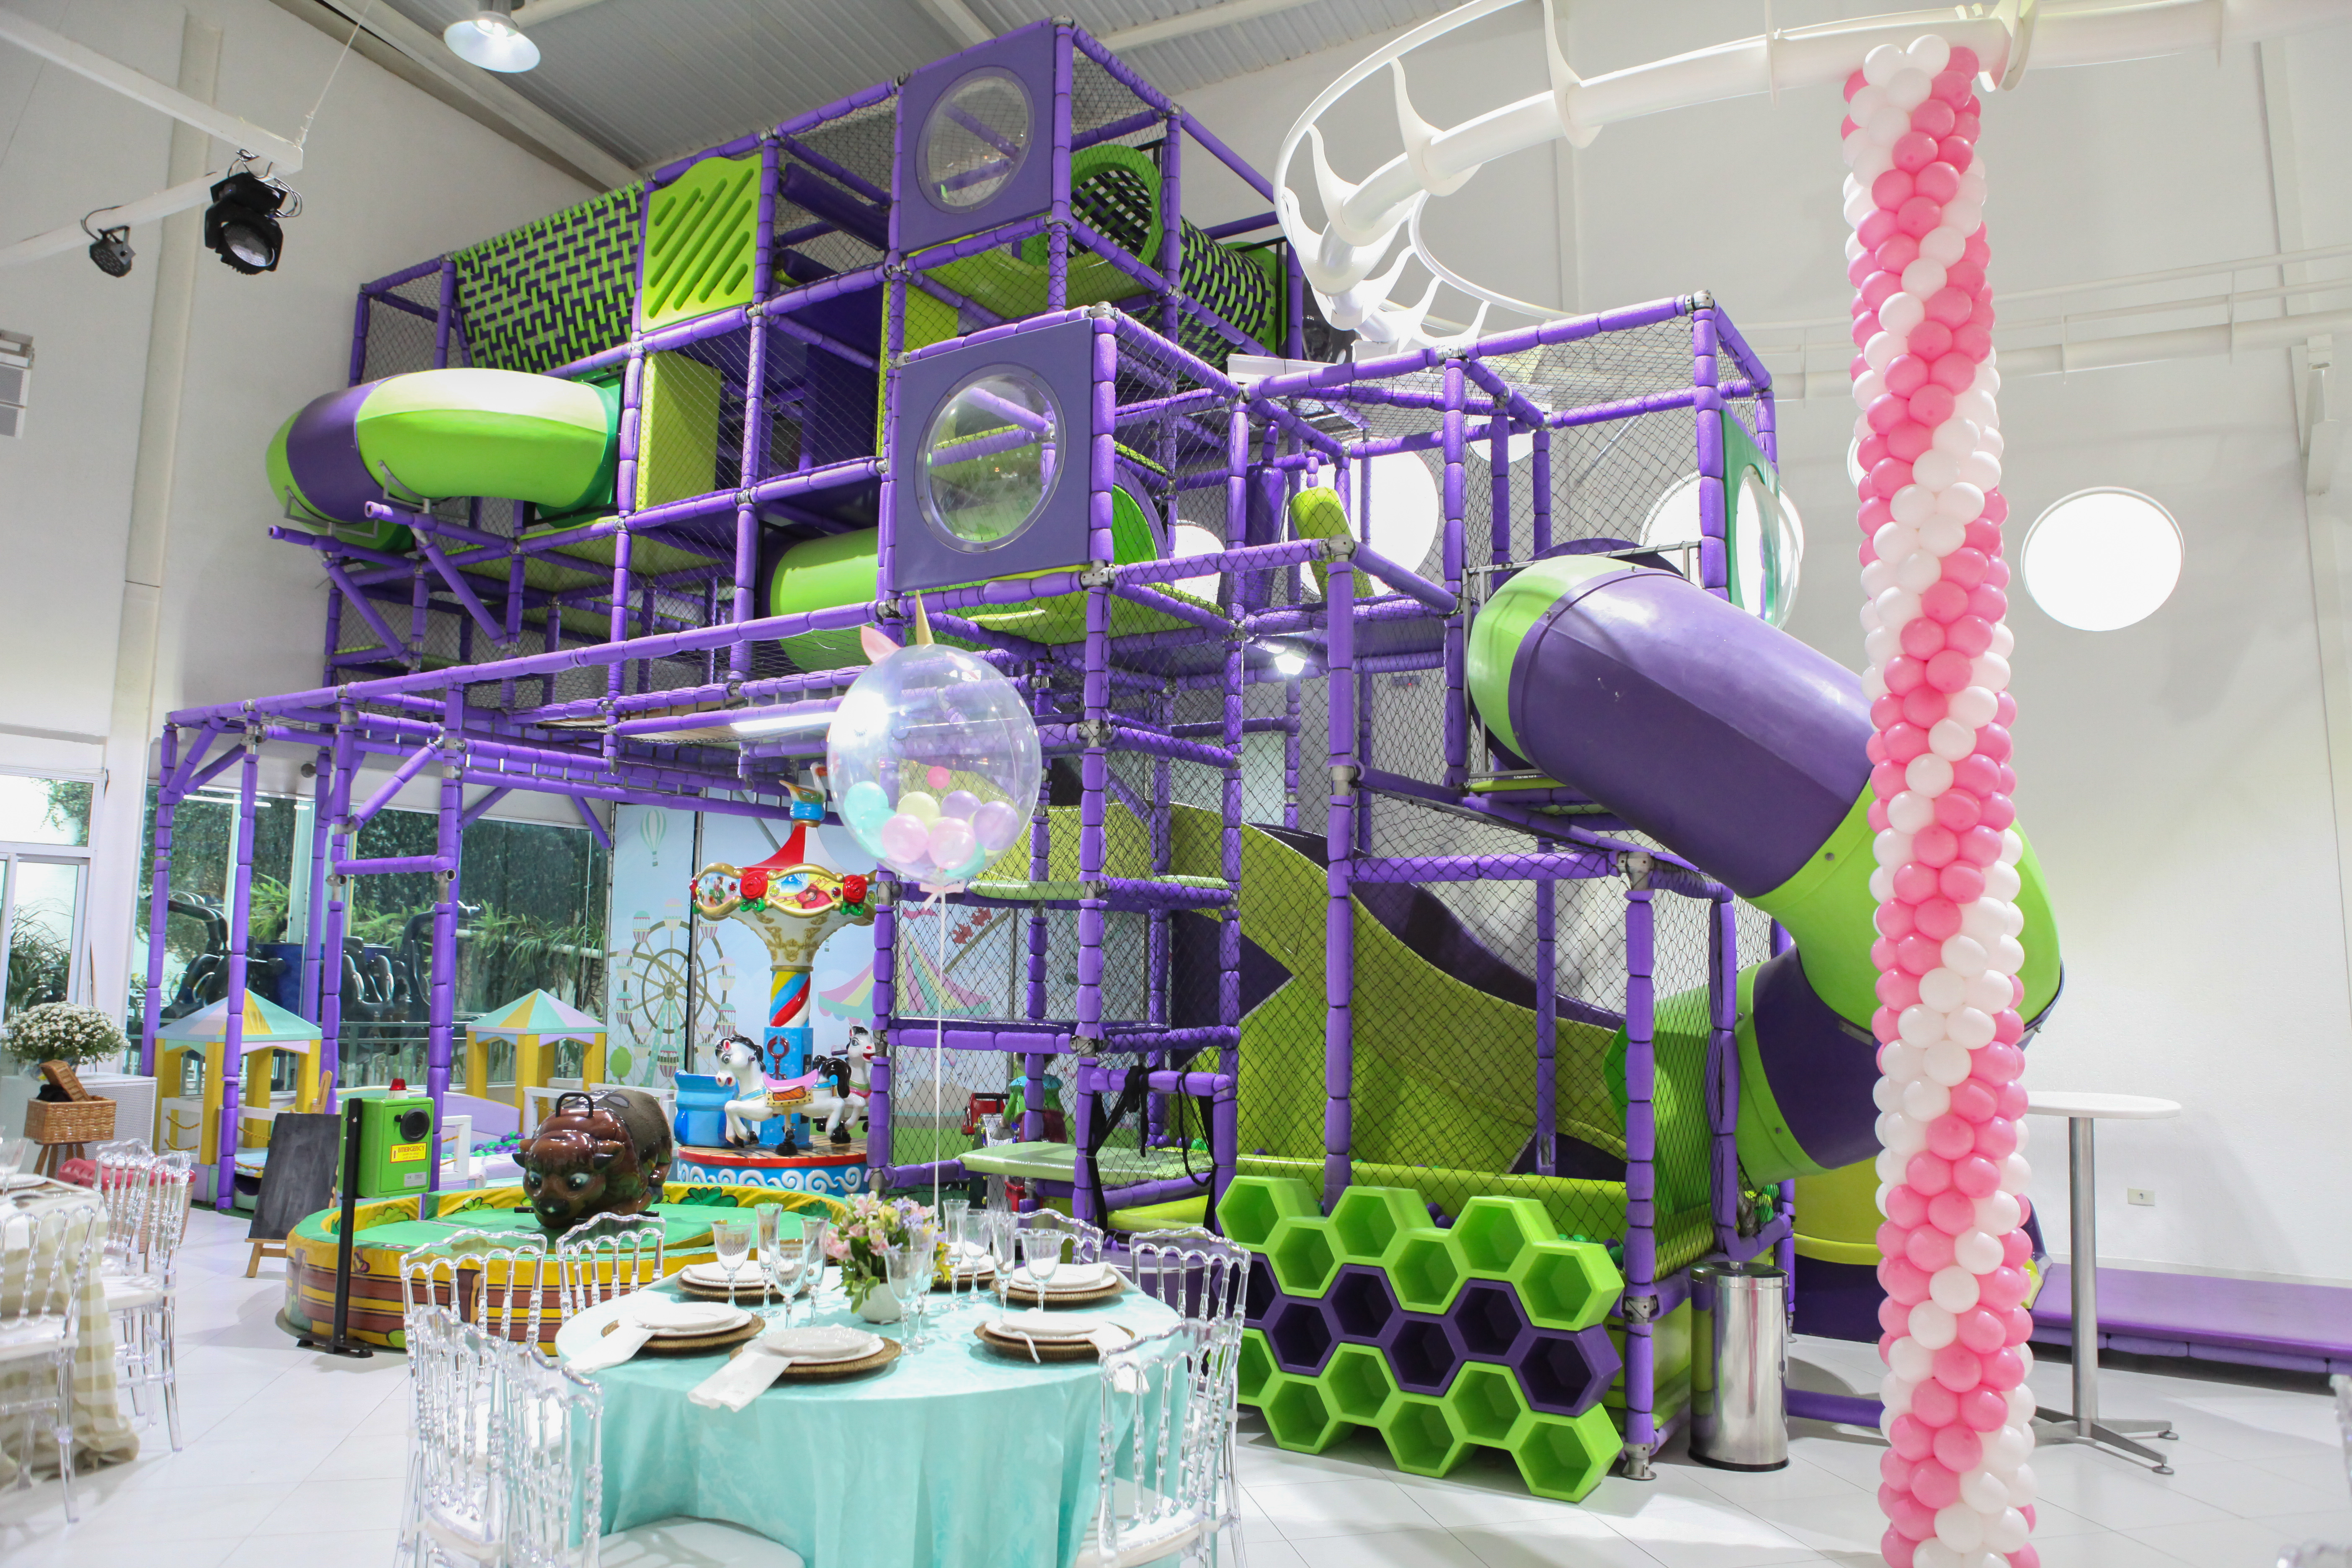 Awesome The Falls Buffet Infantil Campinas Download Free Architecture Designs Intelgarnamadebymaigaardcom